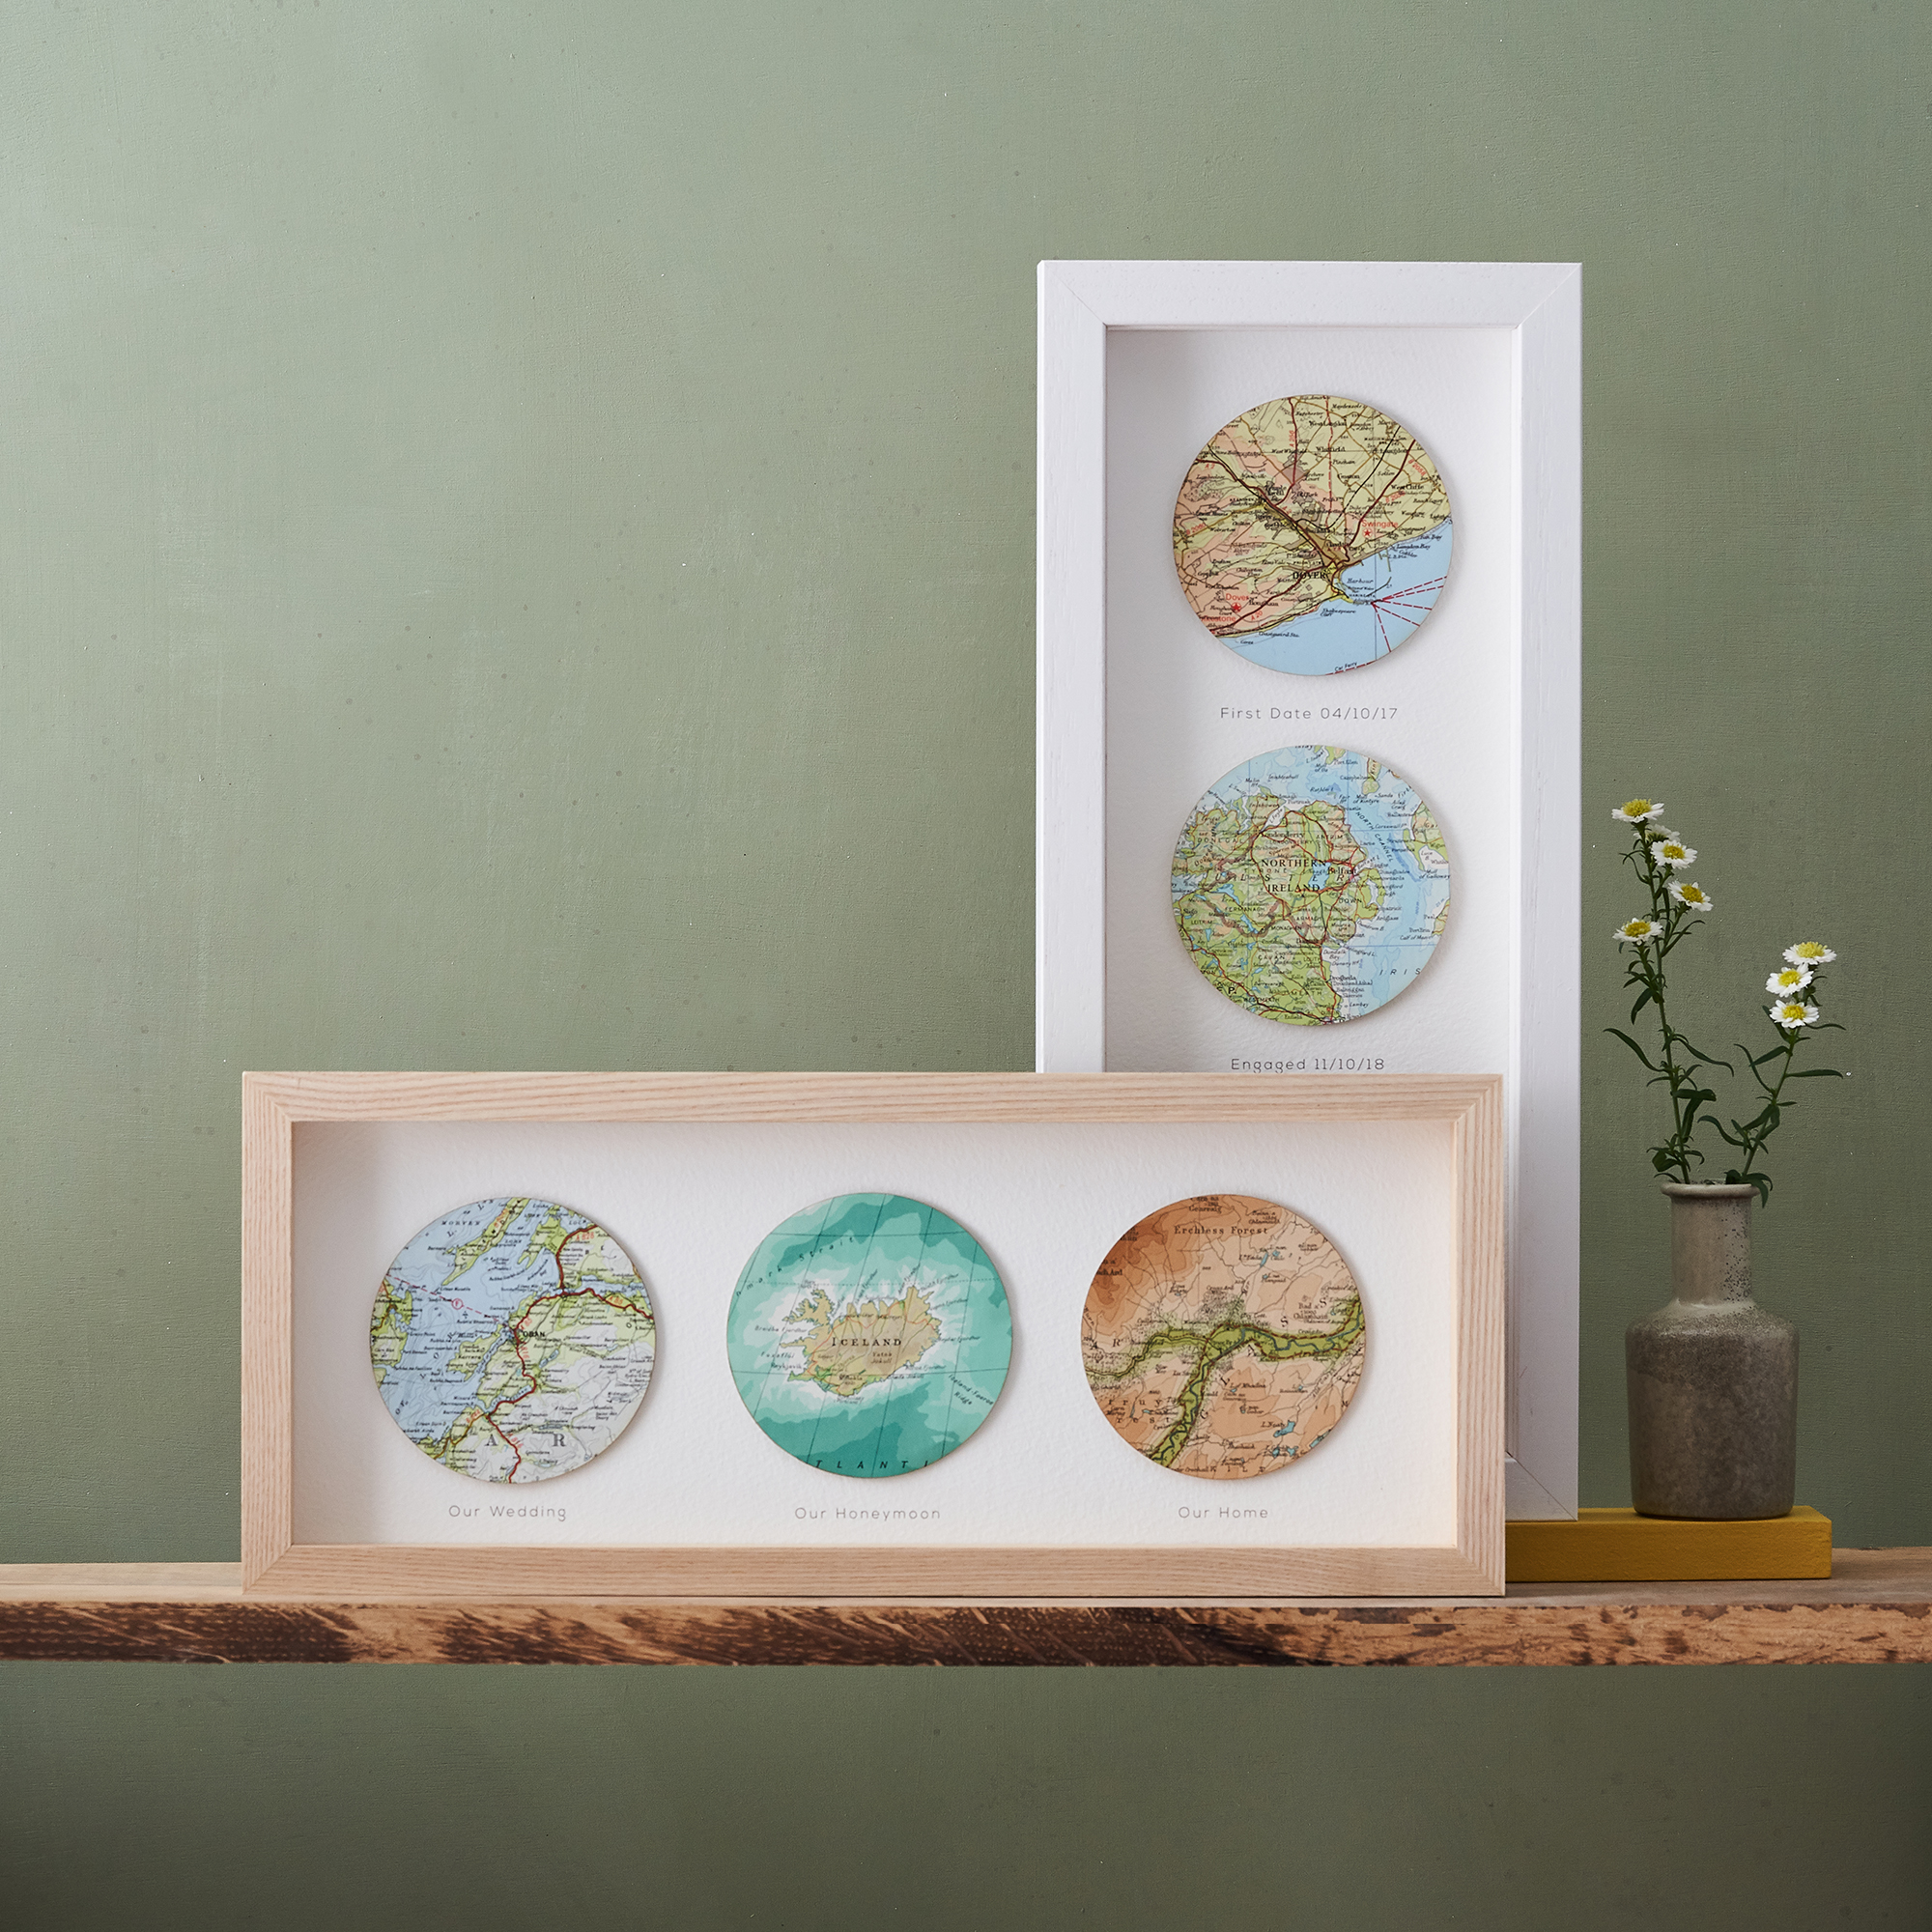 Personalised three map circles artwork as a unique gift idea